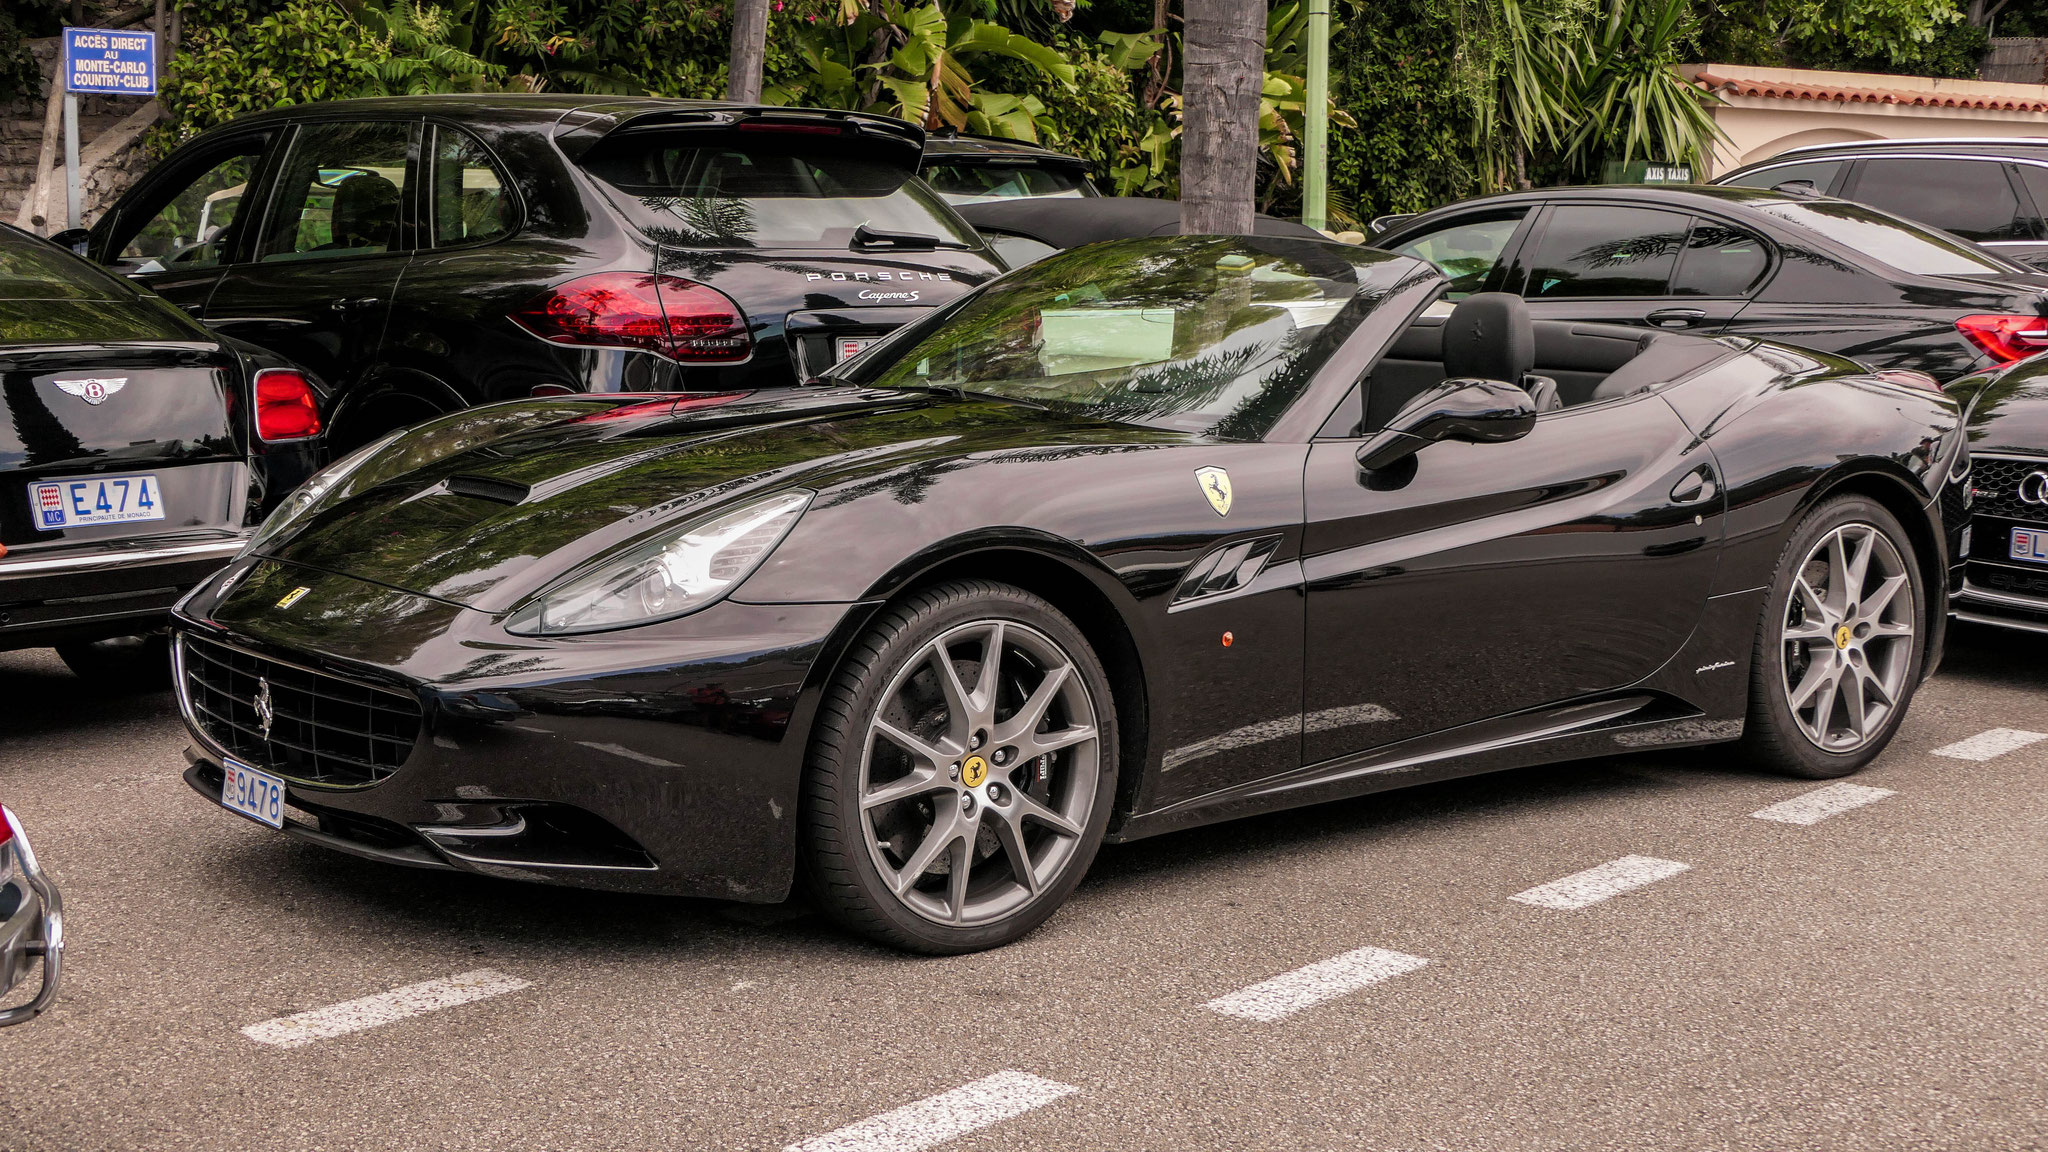 Ferrari California - 9478 (MC)